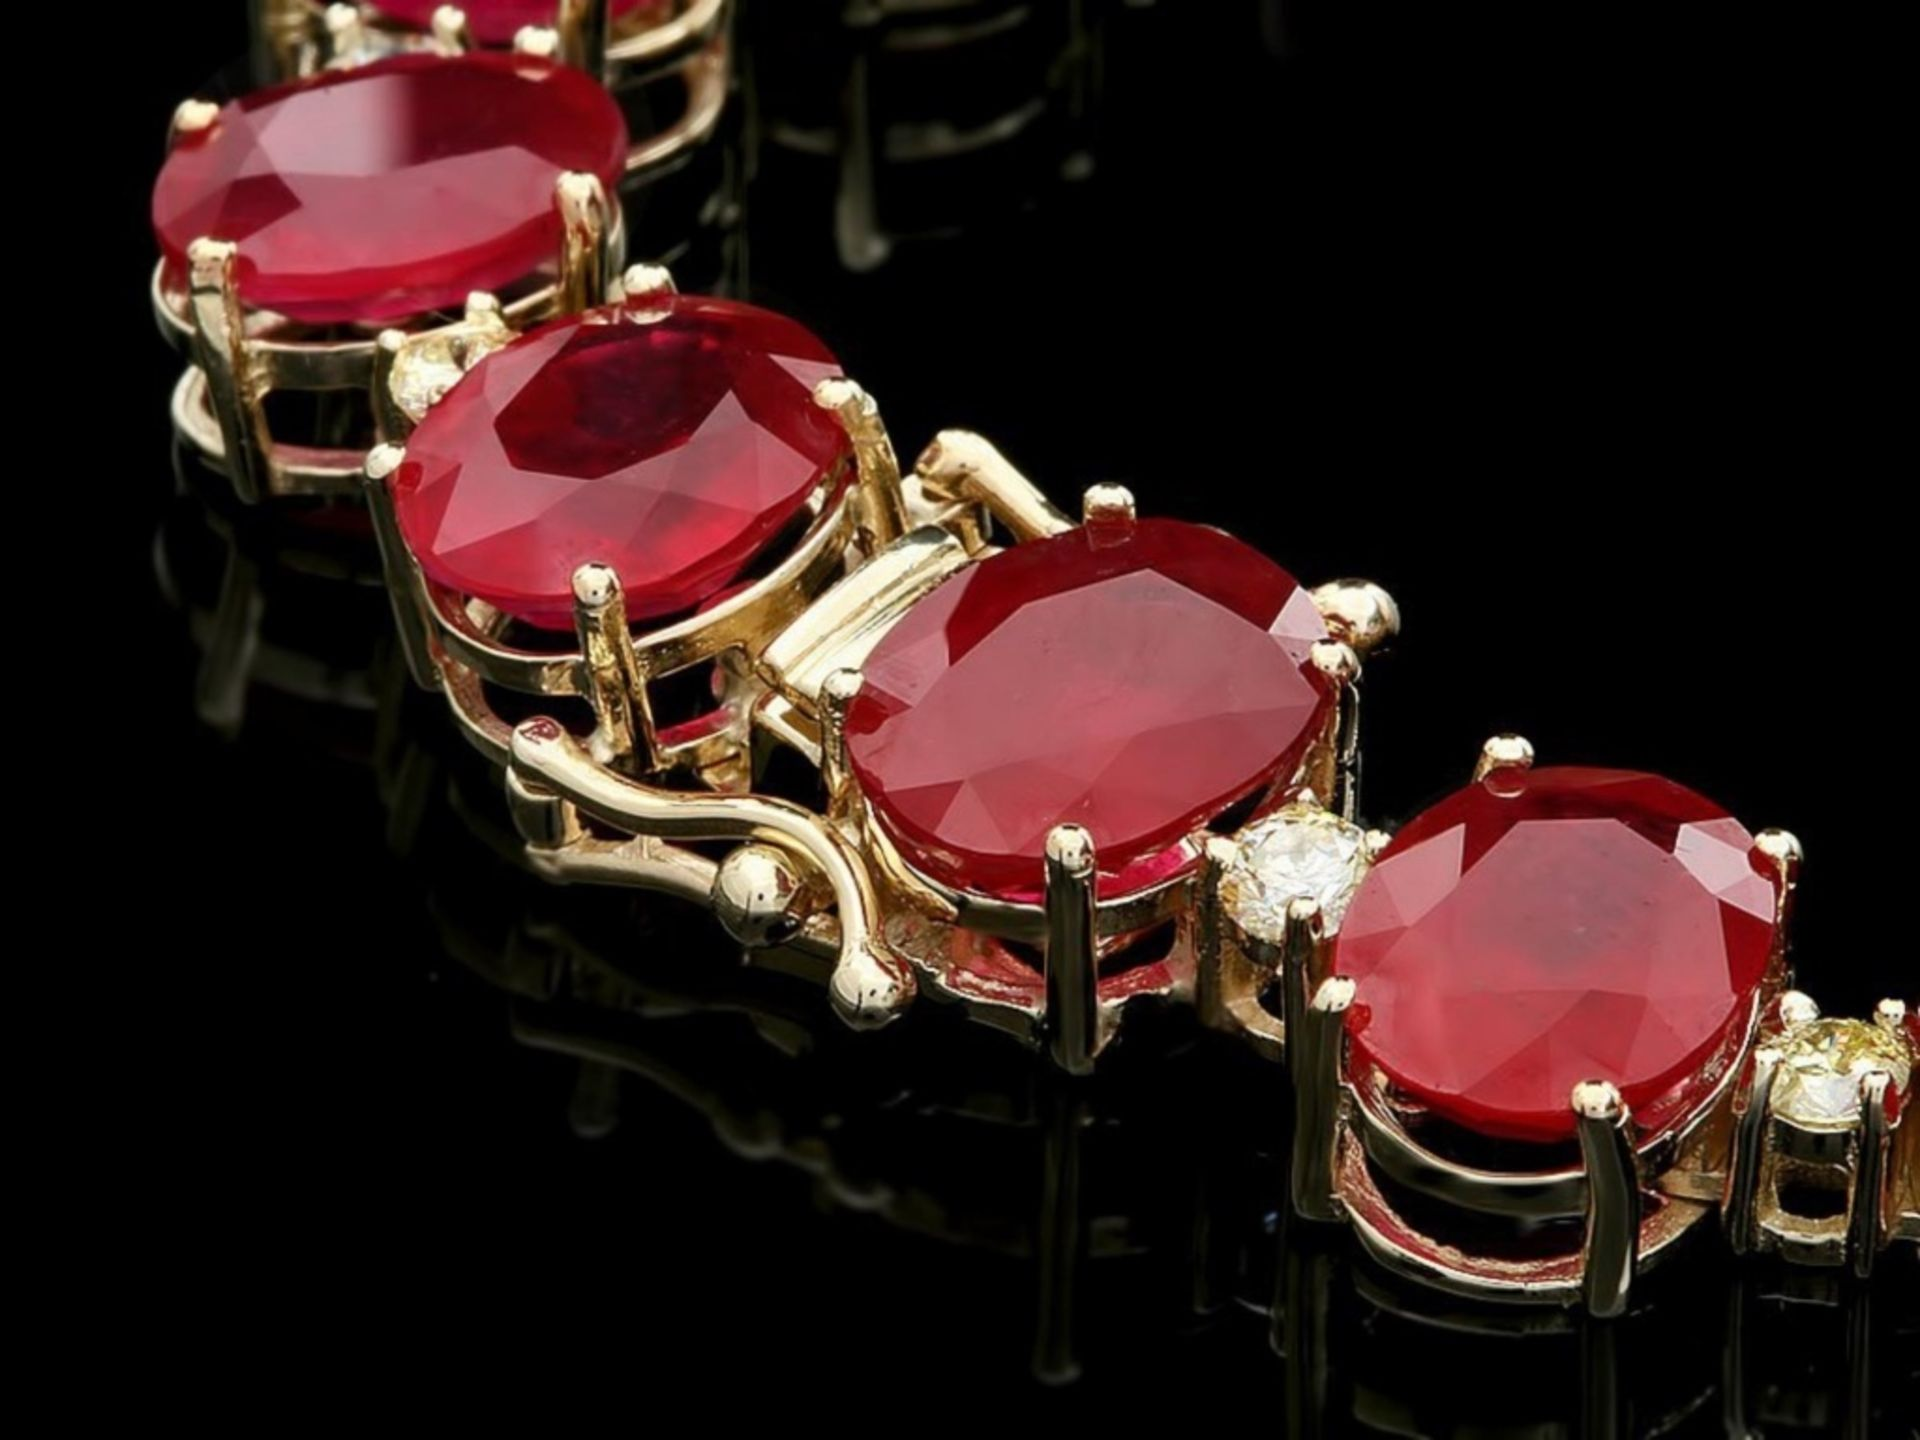 `14k Gold 135.00ct Ruby & 4.00ct Diamond Necklace - Image 3 of 4